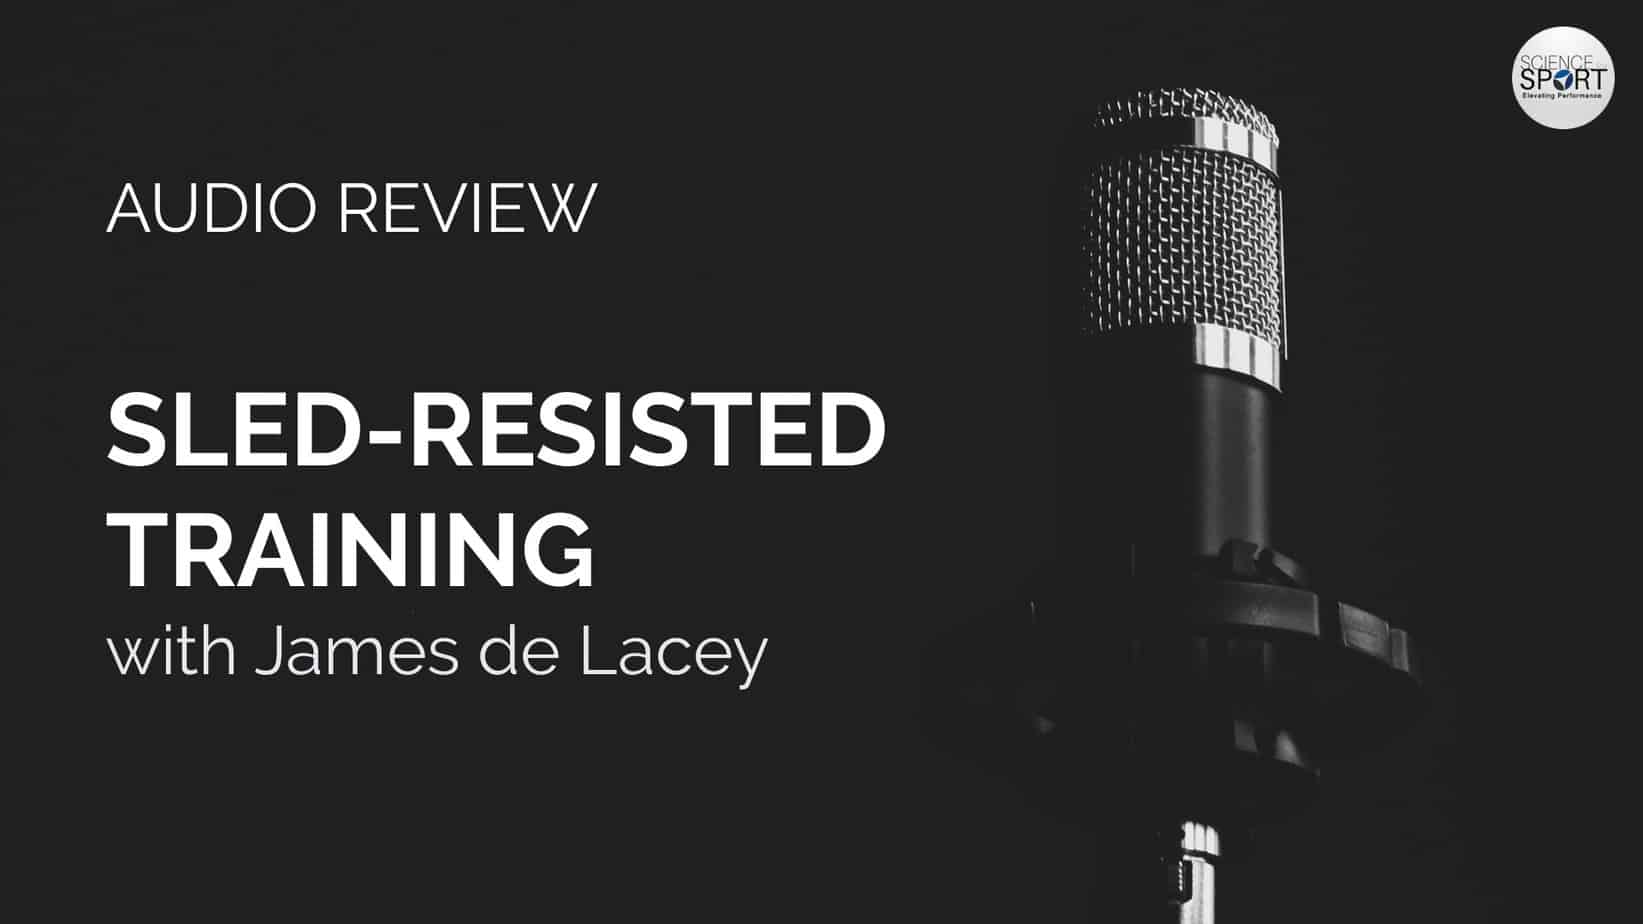 Audio Review - Sled-Resisted Training - James de Lacey - Science for Sport